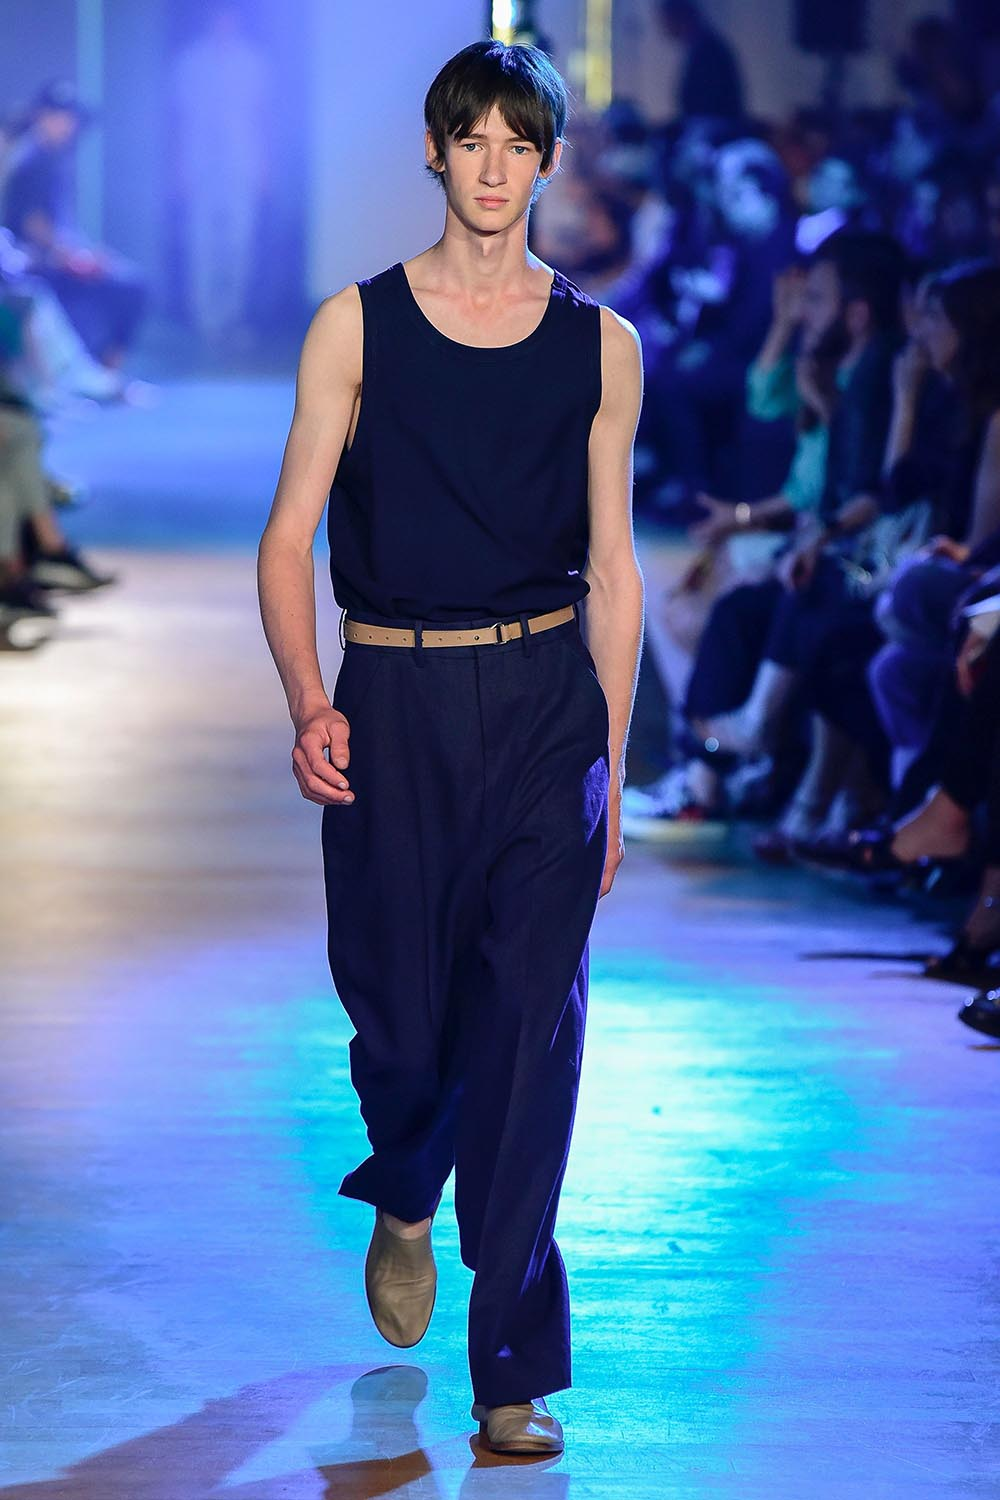 Cerruti 1881 Paris Fashion Week Men's SS19 - Sagaboi - Look 27